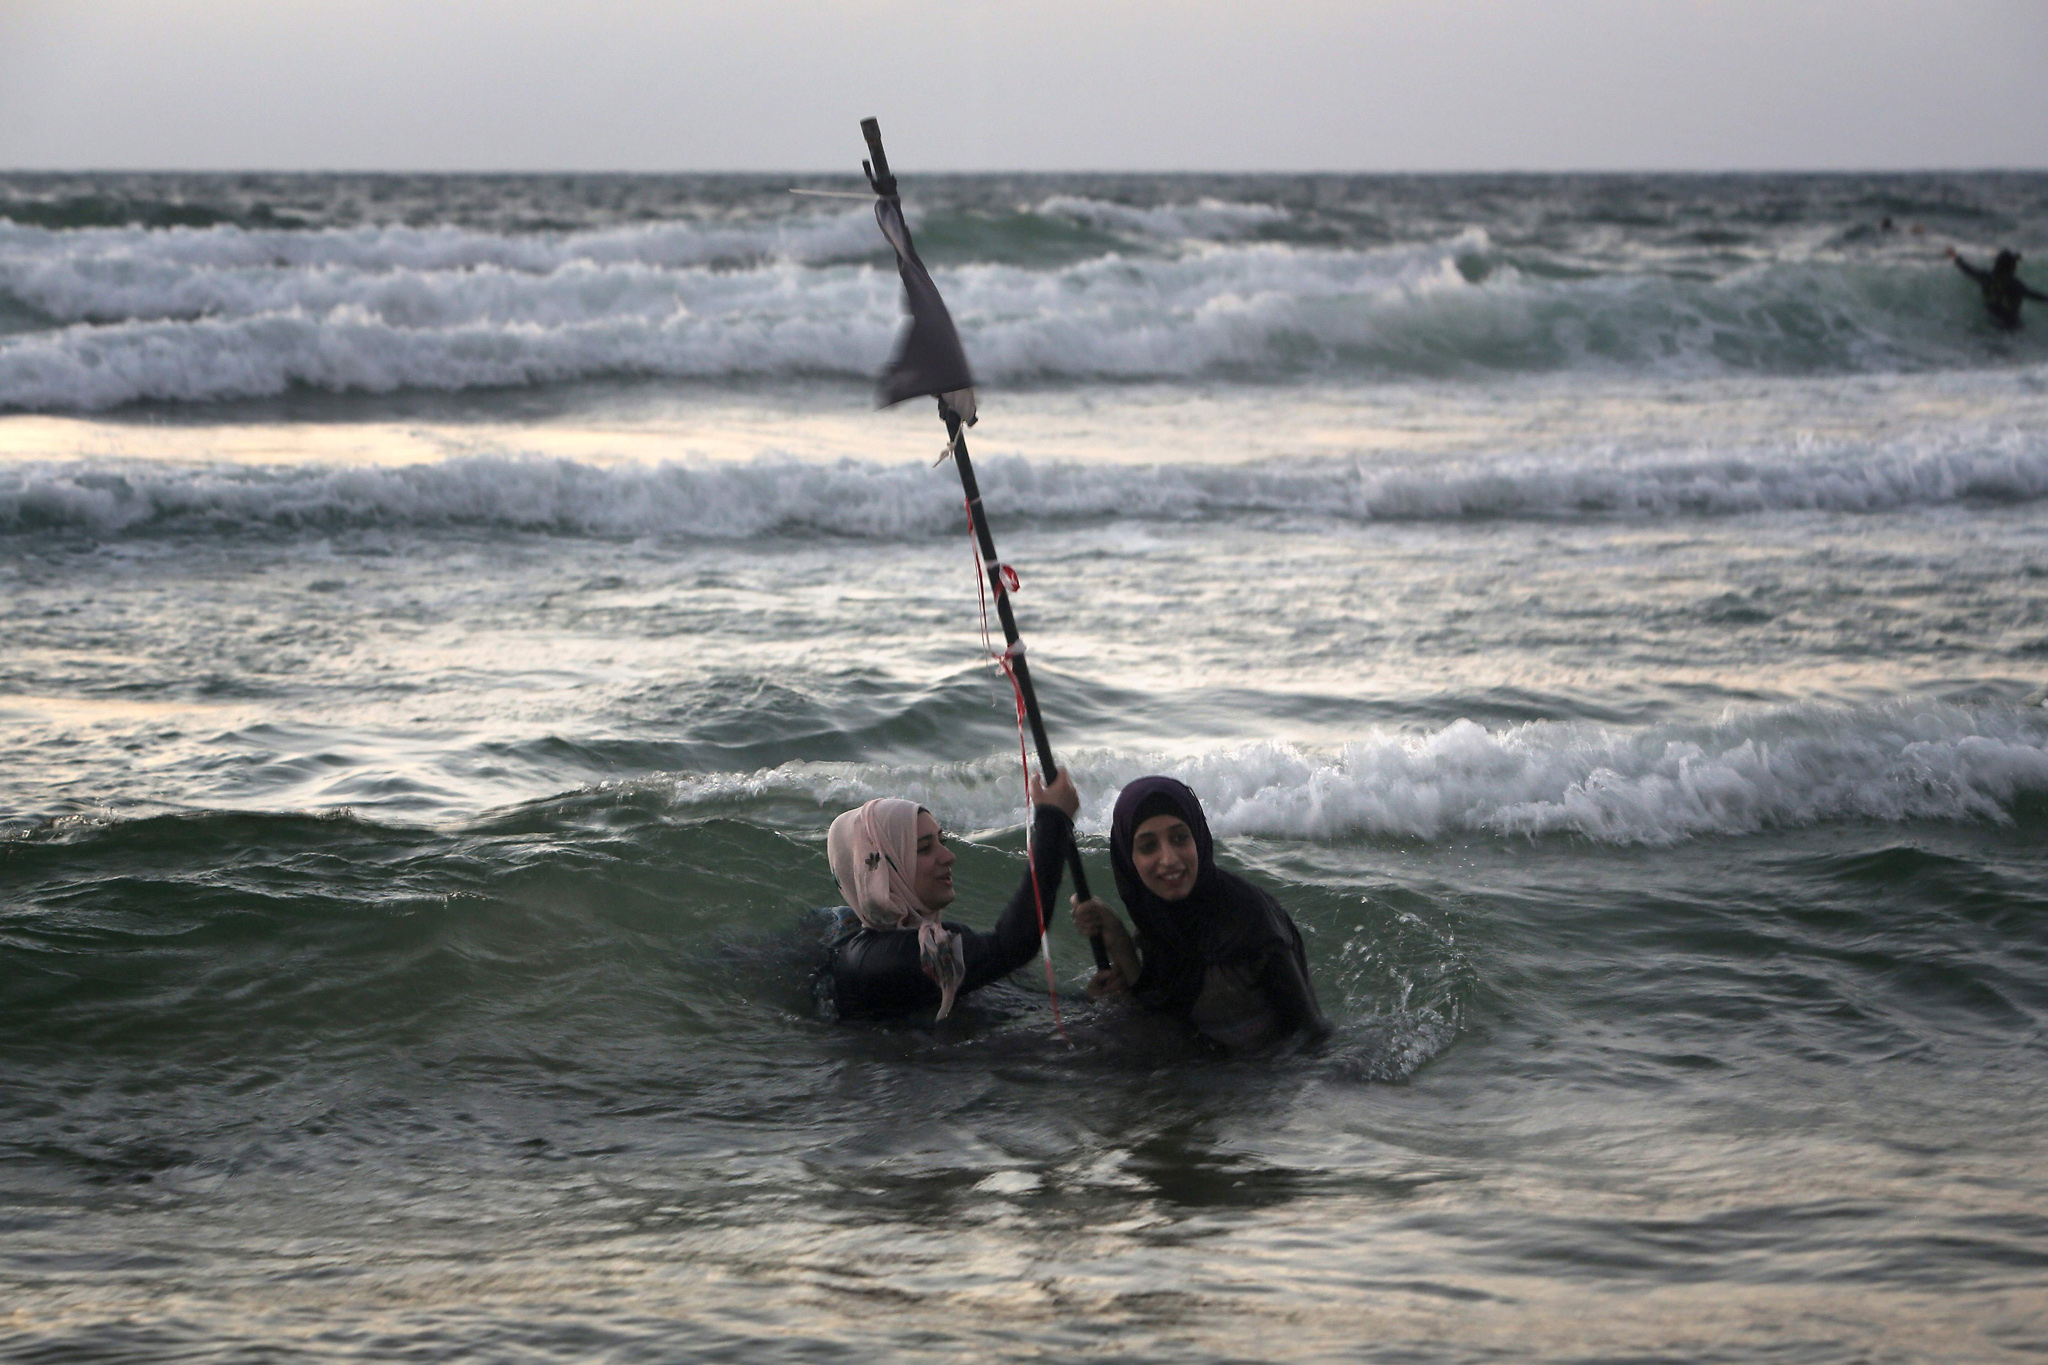 Palestinian women swim in the Mediterranean sea on the beach in Tel Aviv during the Eid al-Adha holiday